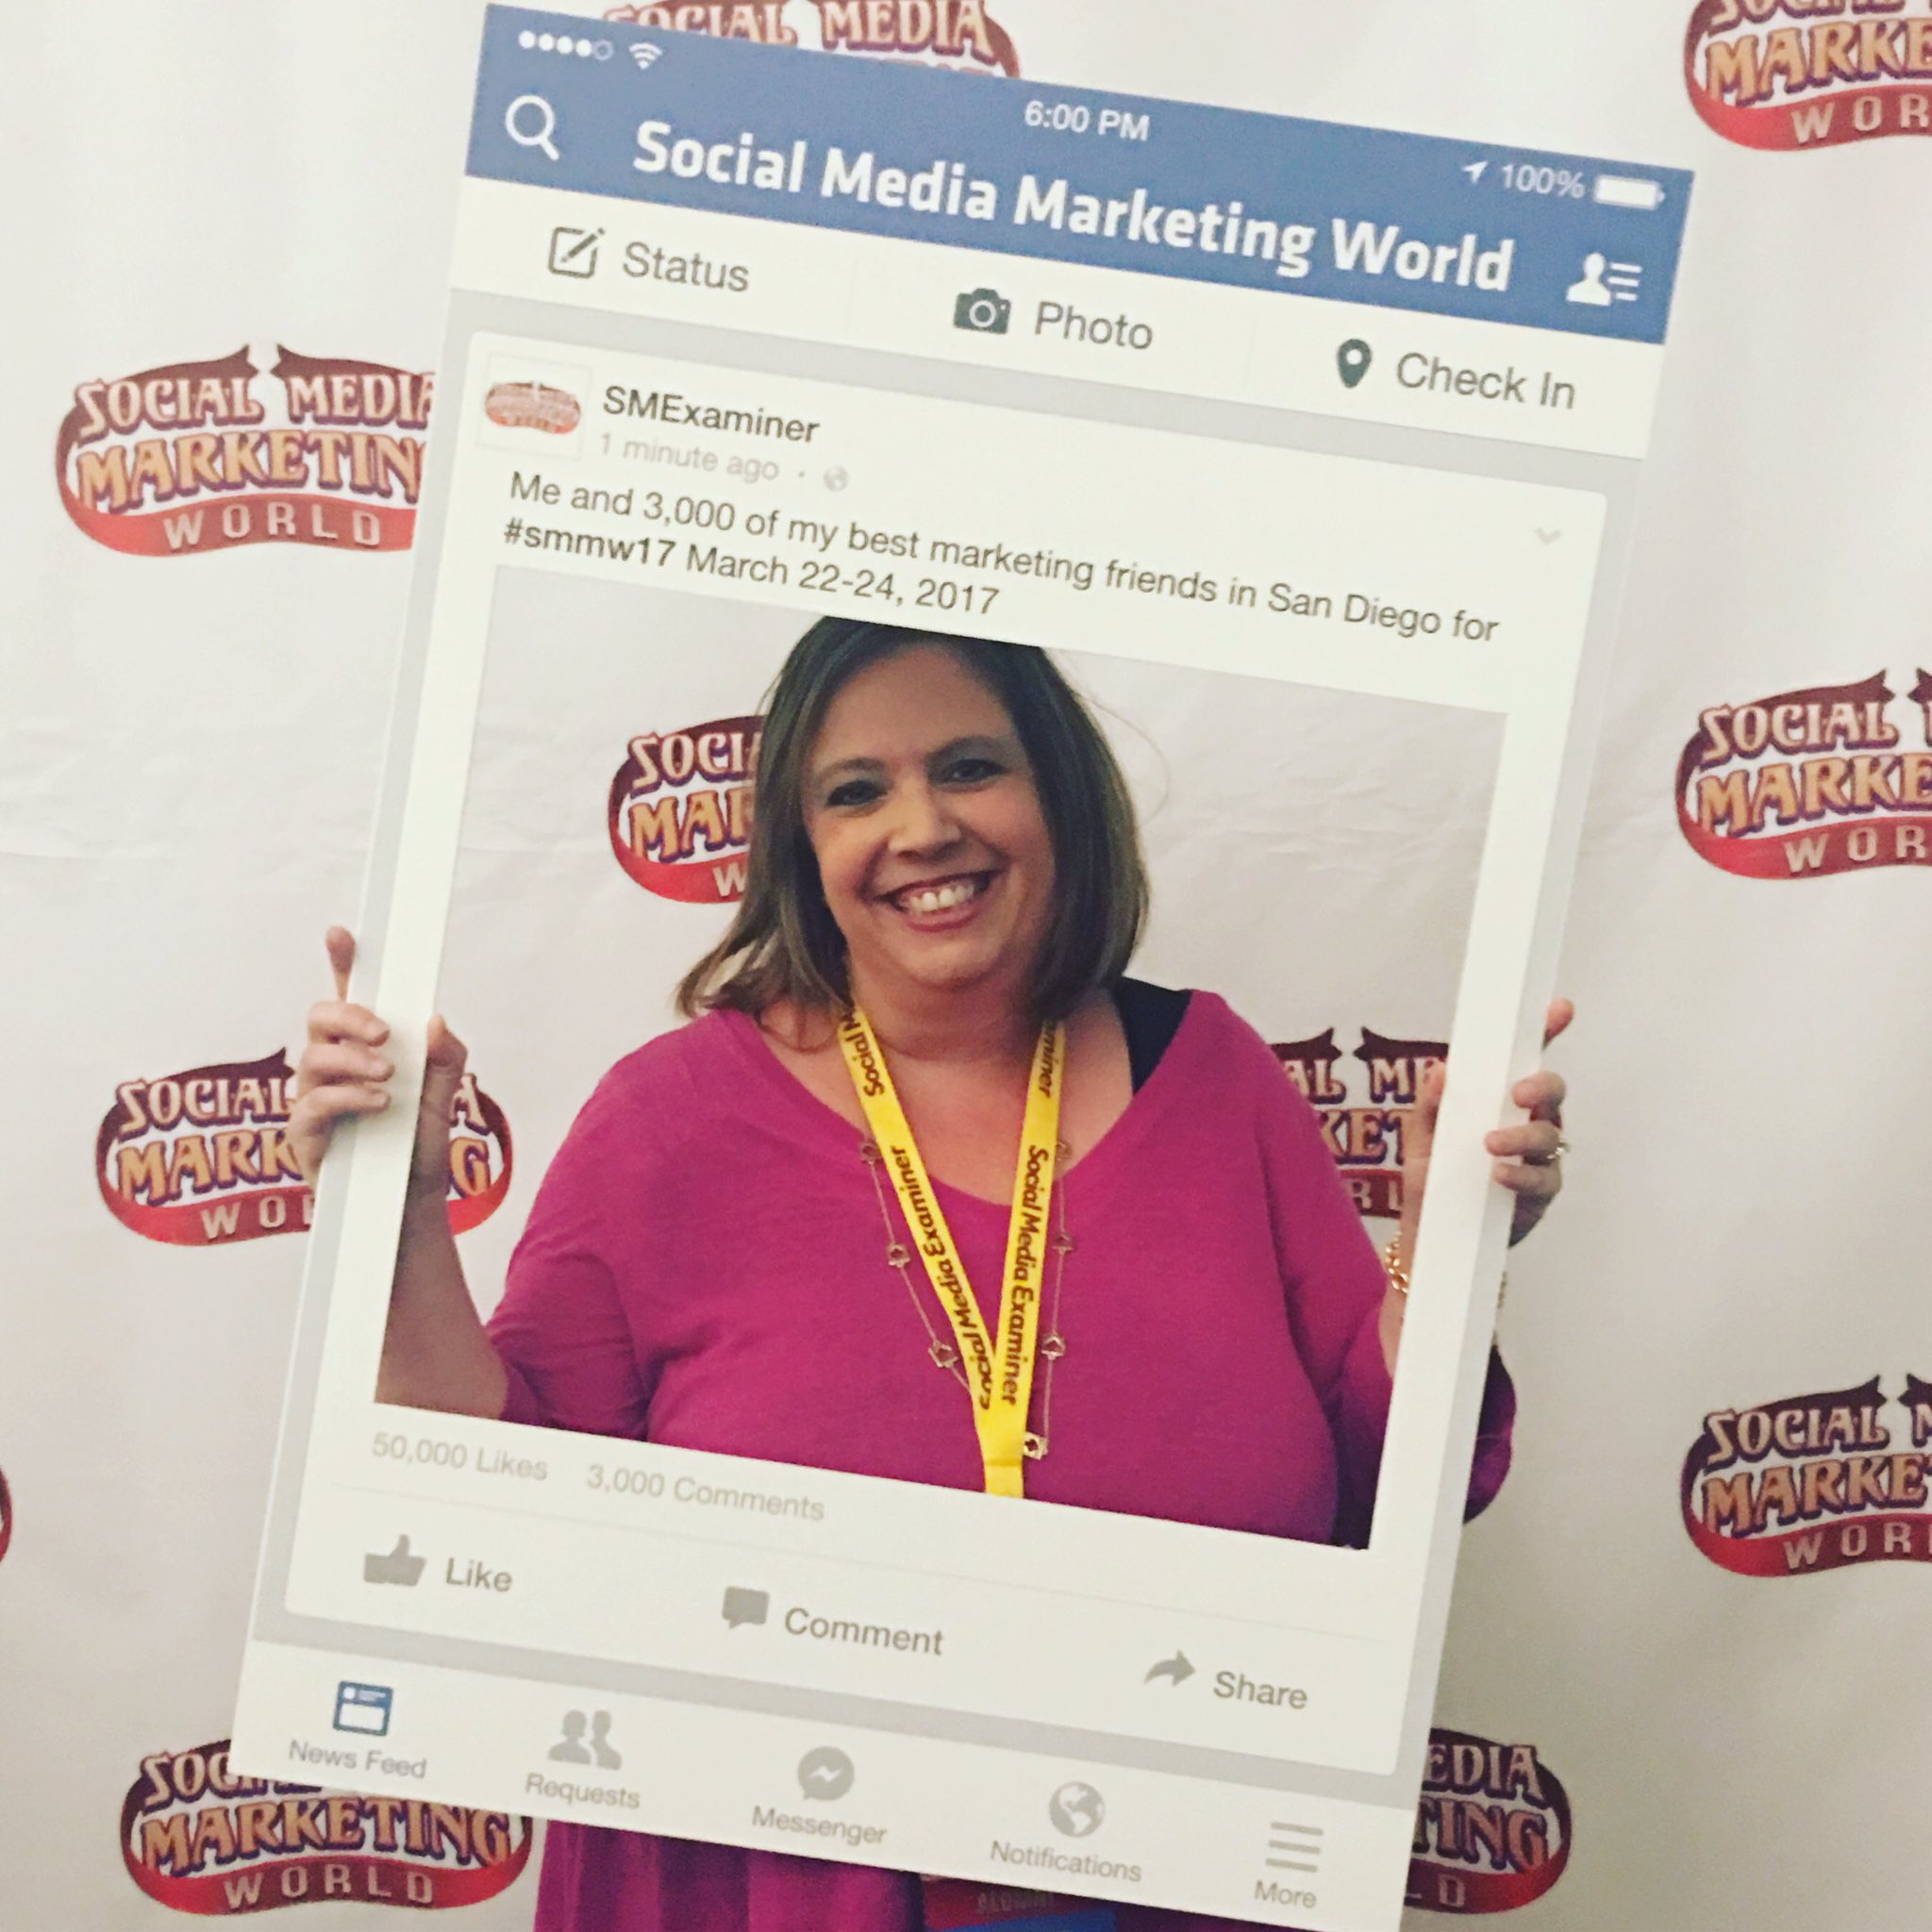 Big thanks to @Mike_Stelzner @Phil_Mershon and the entire #SMMW17 team for putting on another stellar event. Honored to be a part of it! https://t.co/fztDs2kQW9